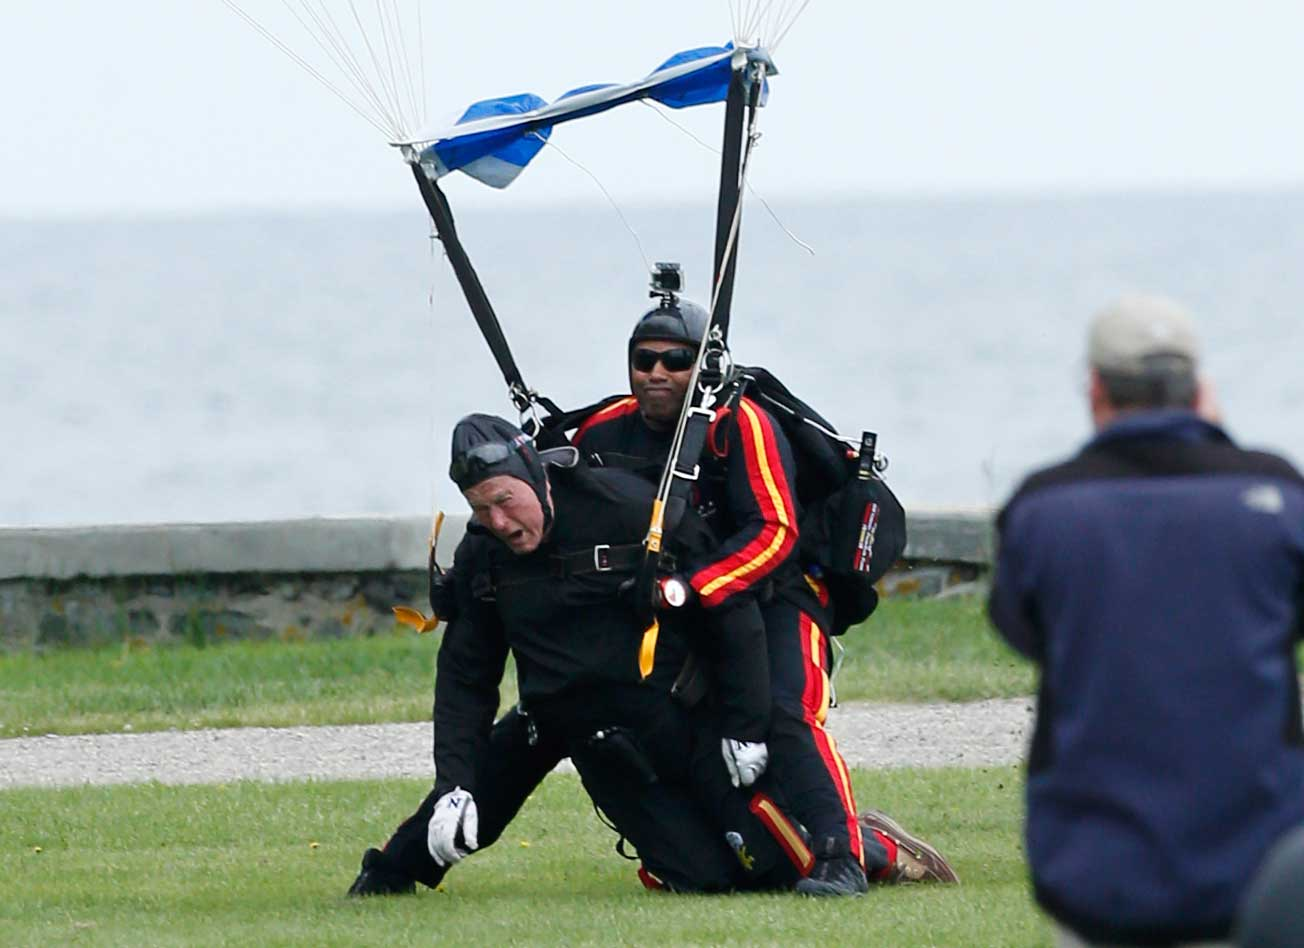 Former President George H.W. Bush, left, strapped to Sgt. 1st Class Mike Elliott, a retired member of the Army's Golden Knights parachute team, land on the lawn at St. Anne's Episcopal Church after making a tandem parachute jump near Bush's summer home in Kennebunkport, Maine, Thursday, June 12, 2014.